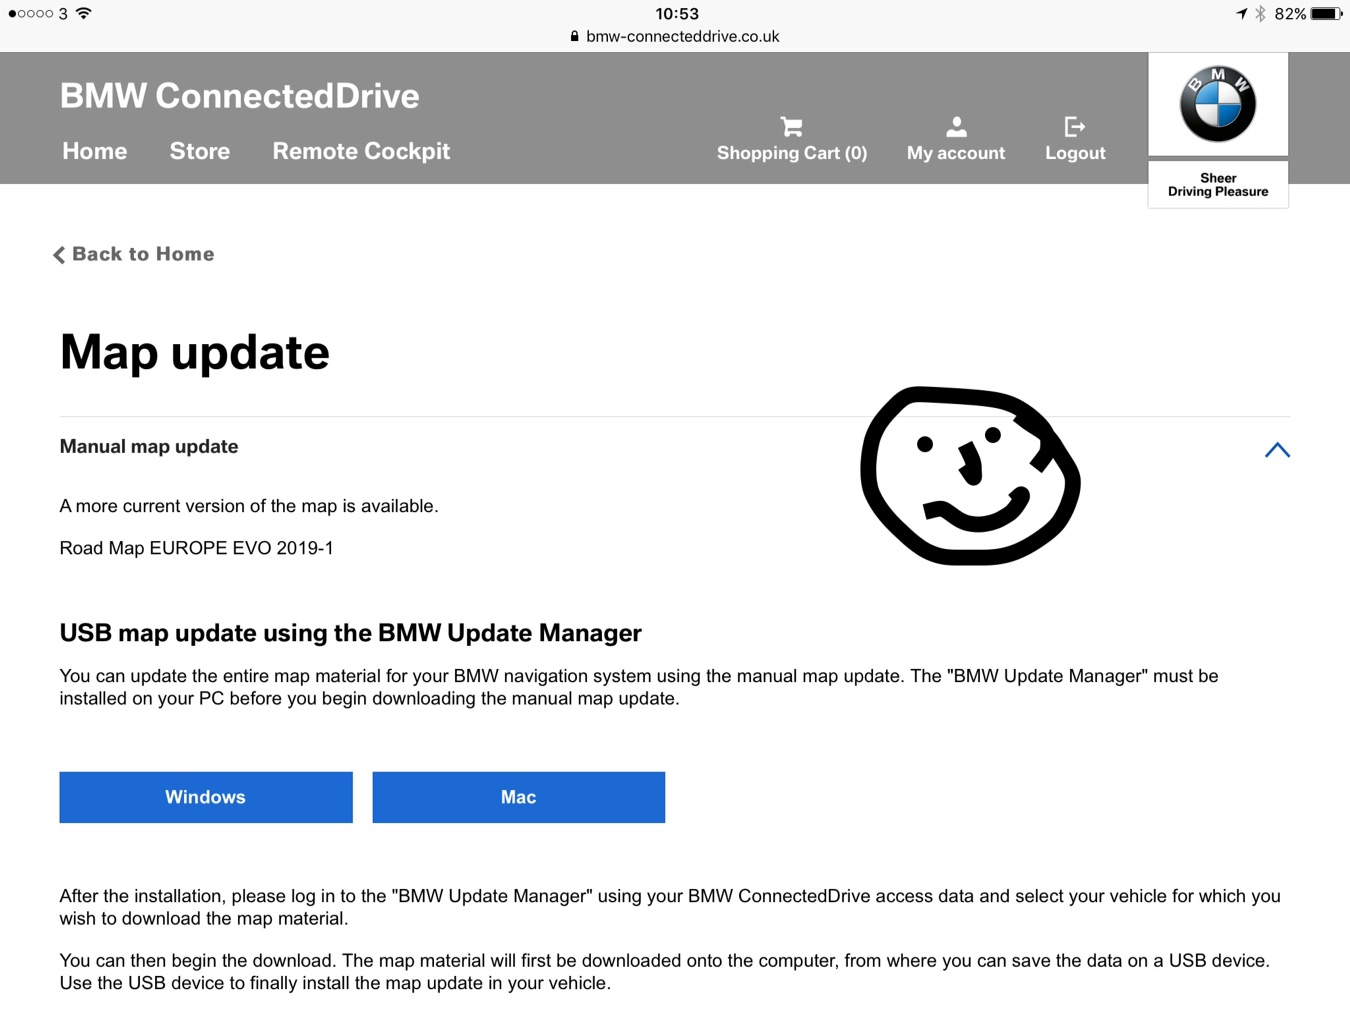 bmw download manager map update